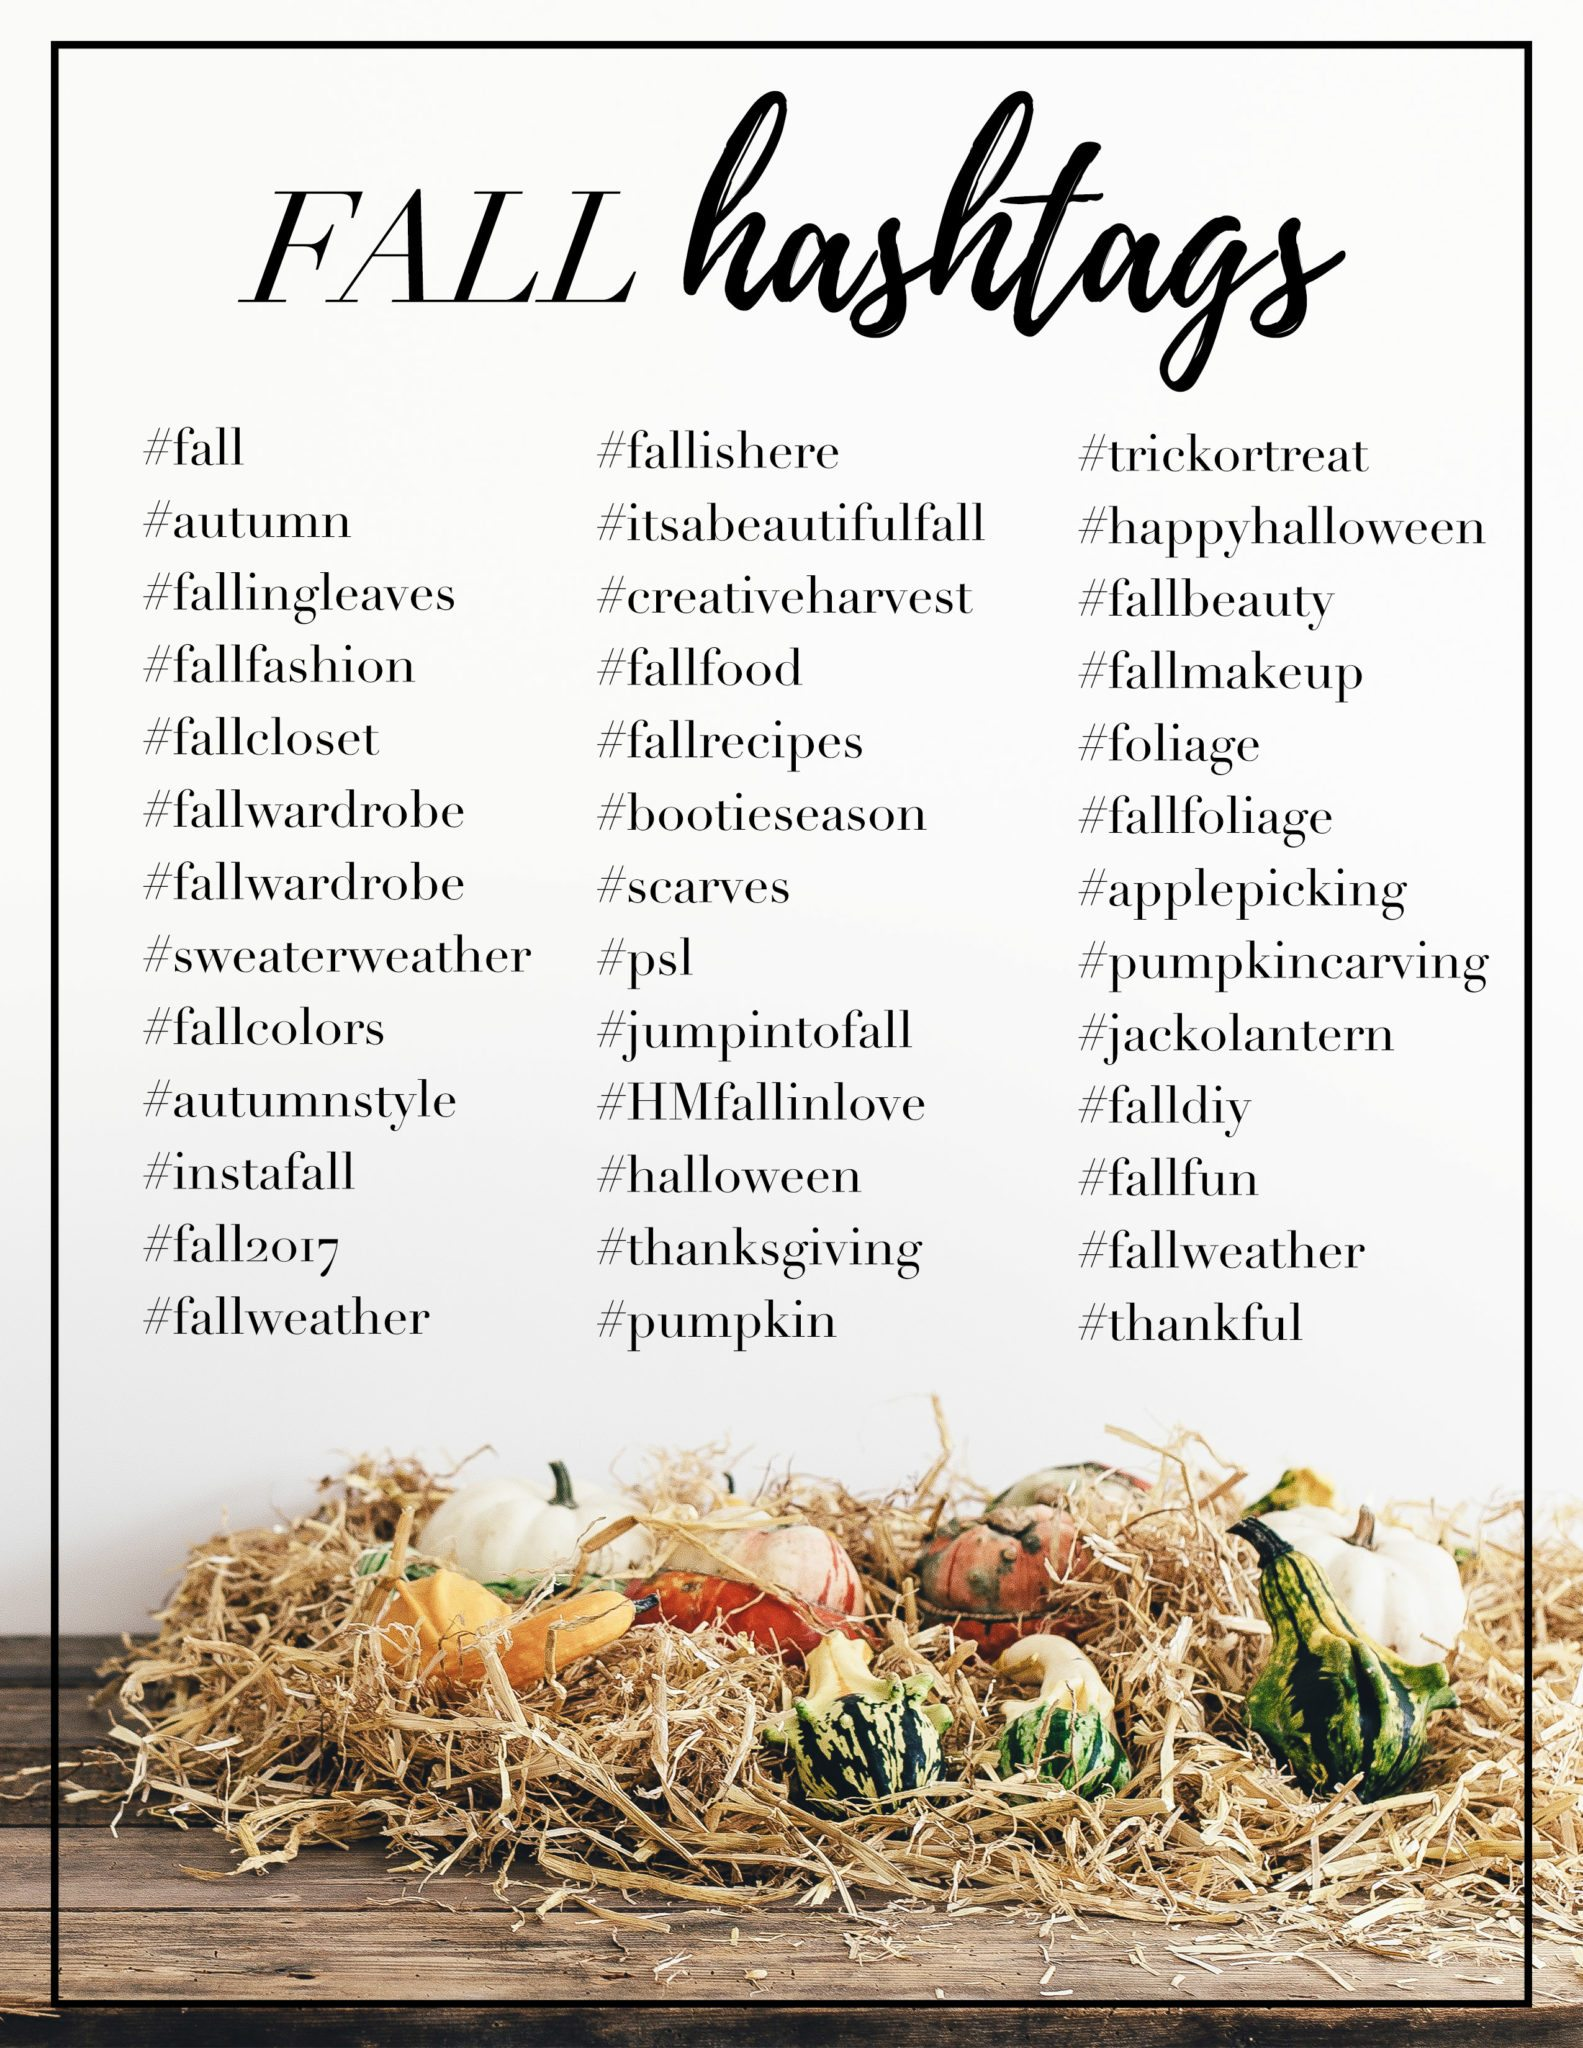 Fall Hashtags Holly Habeck